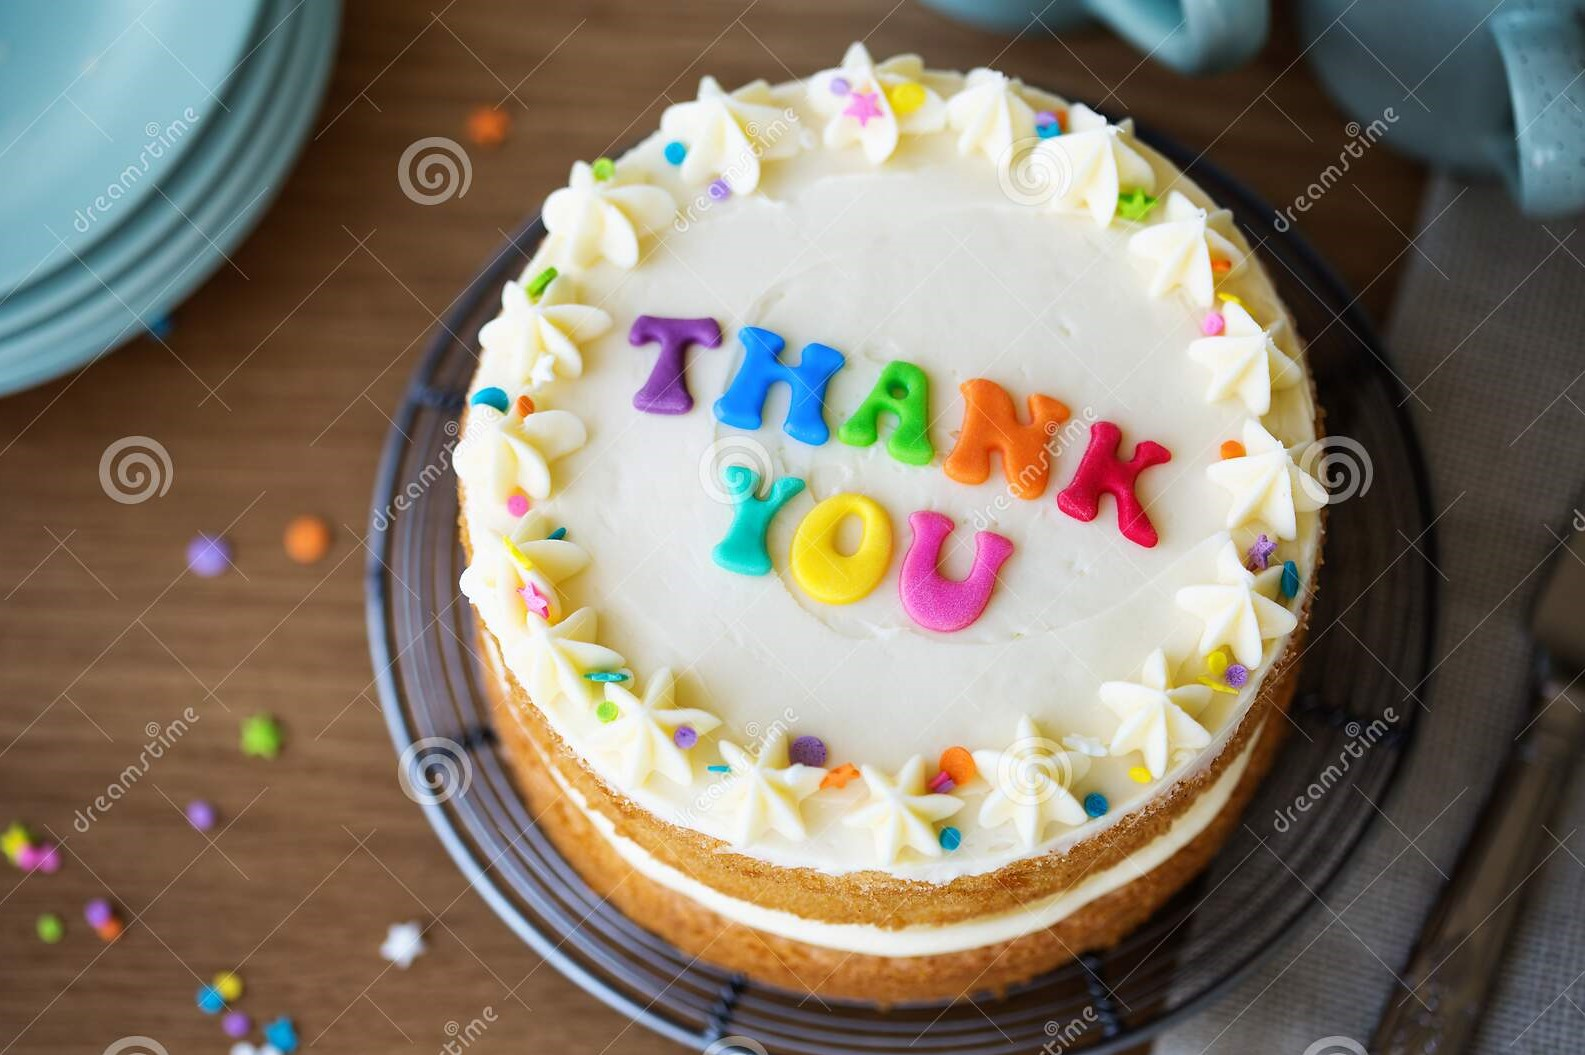 thank-you-cake-colorful-rainbow-letters-spelling-181821700.jpg